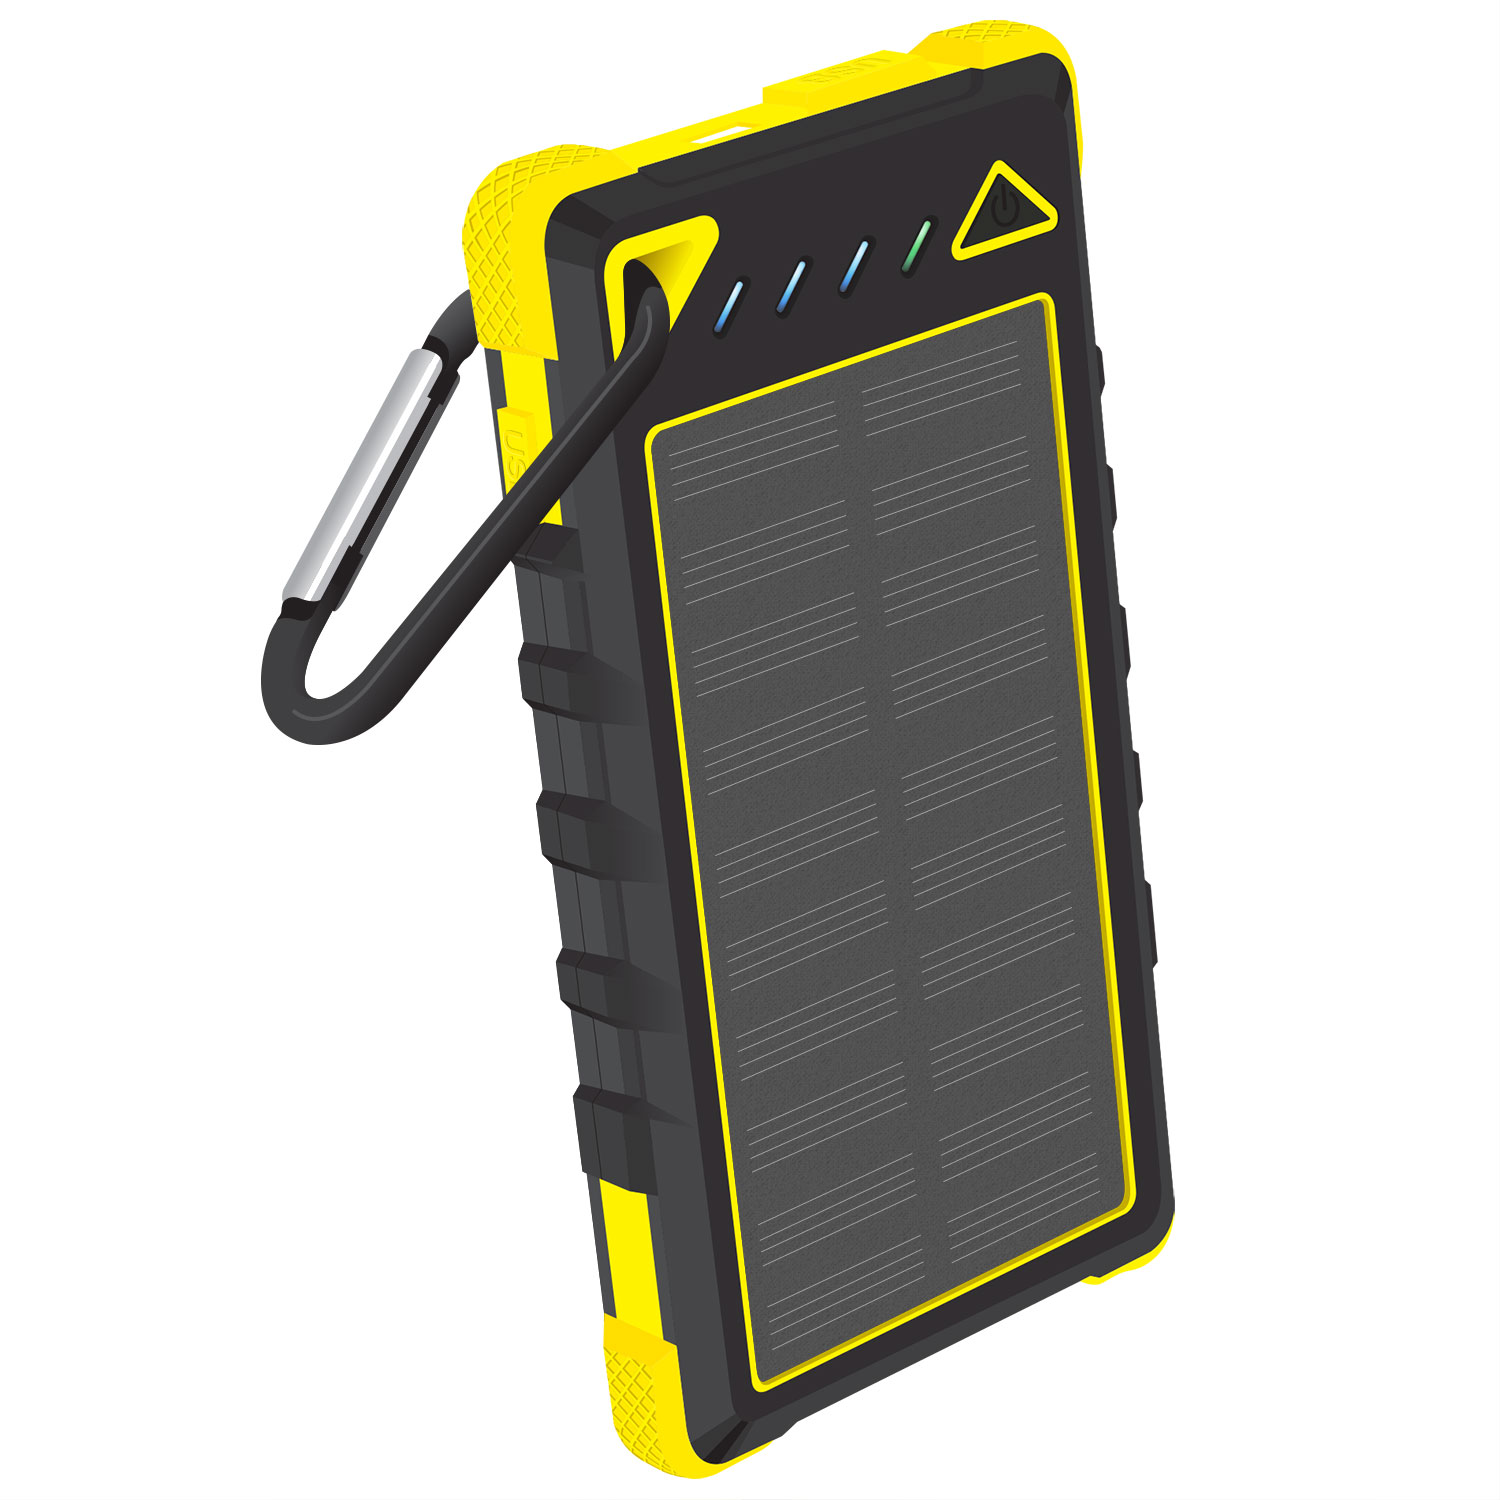 LG K10 Solar Powered Portable PowerBank Yellow